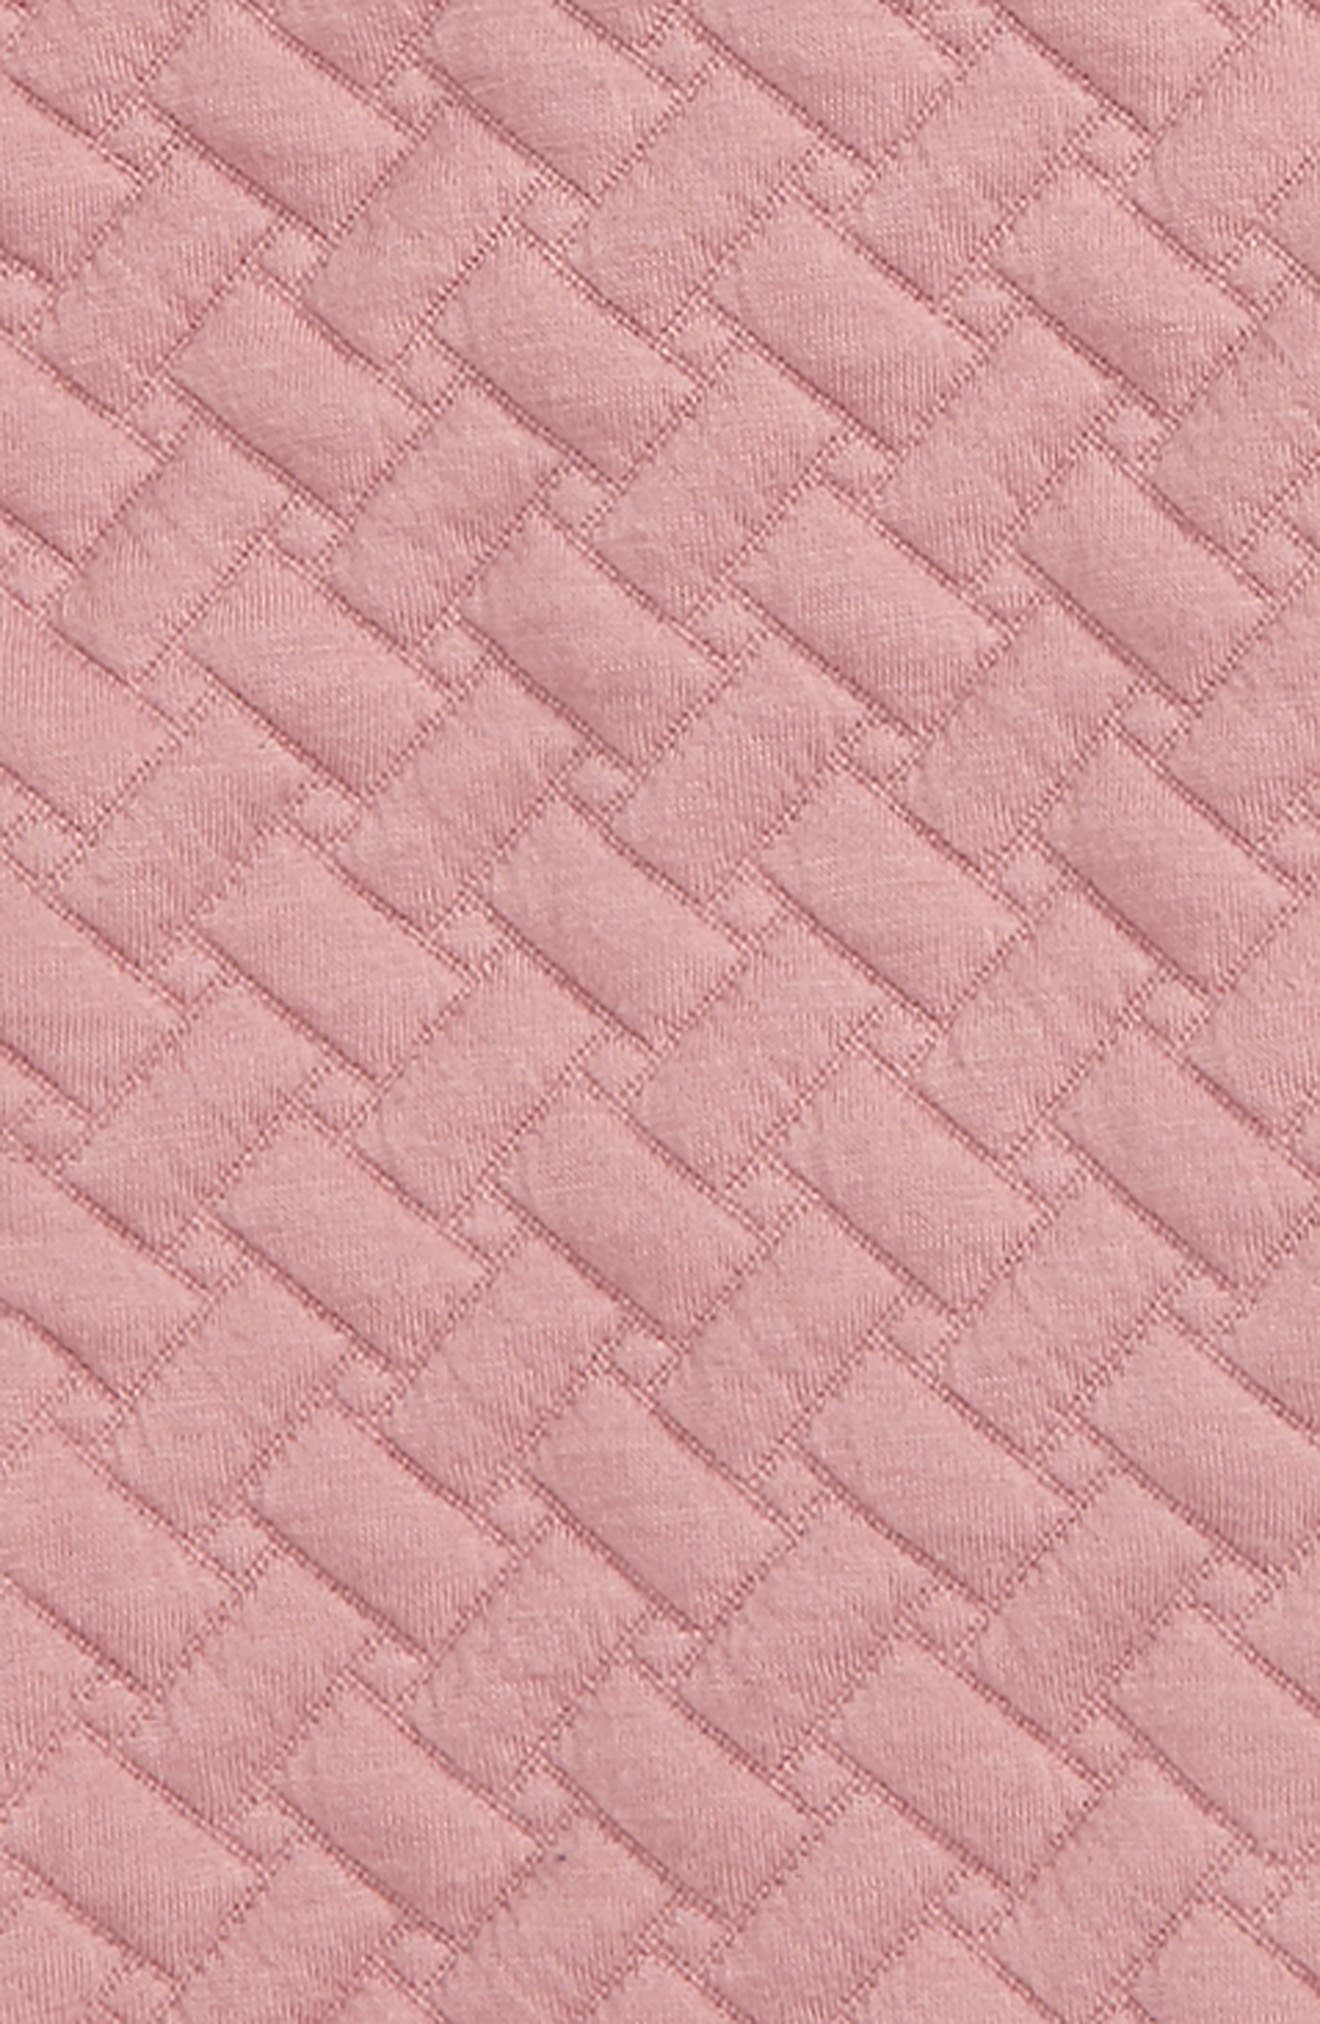 Quilted Moto Jacket,                             Alternate thumbnail 2, color,                             530